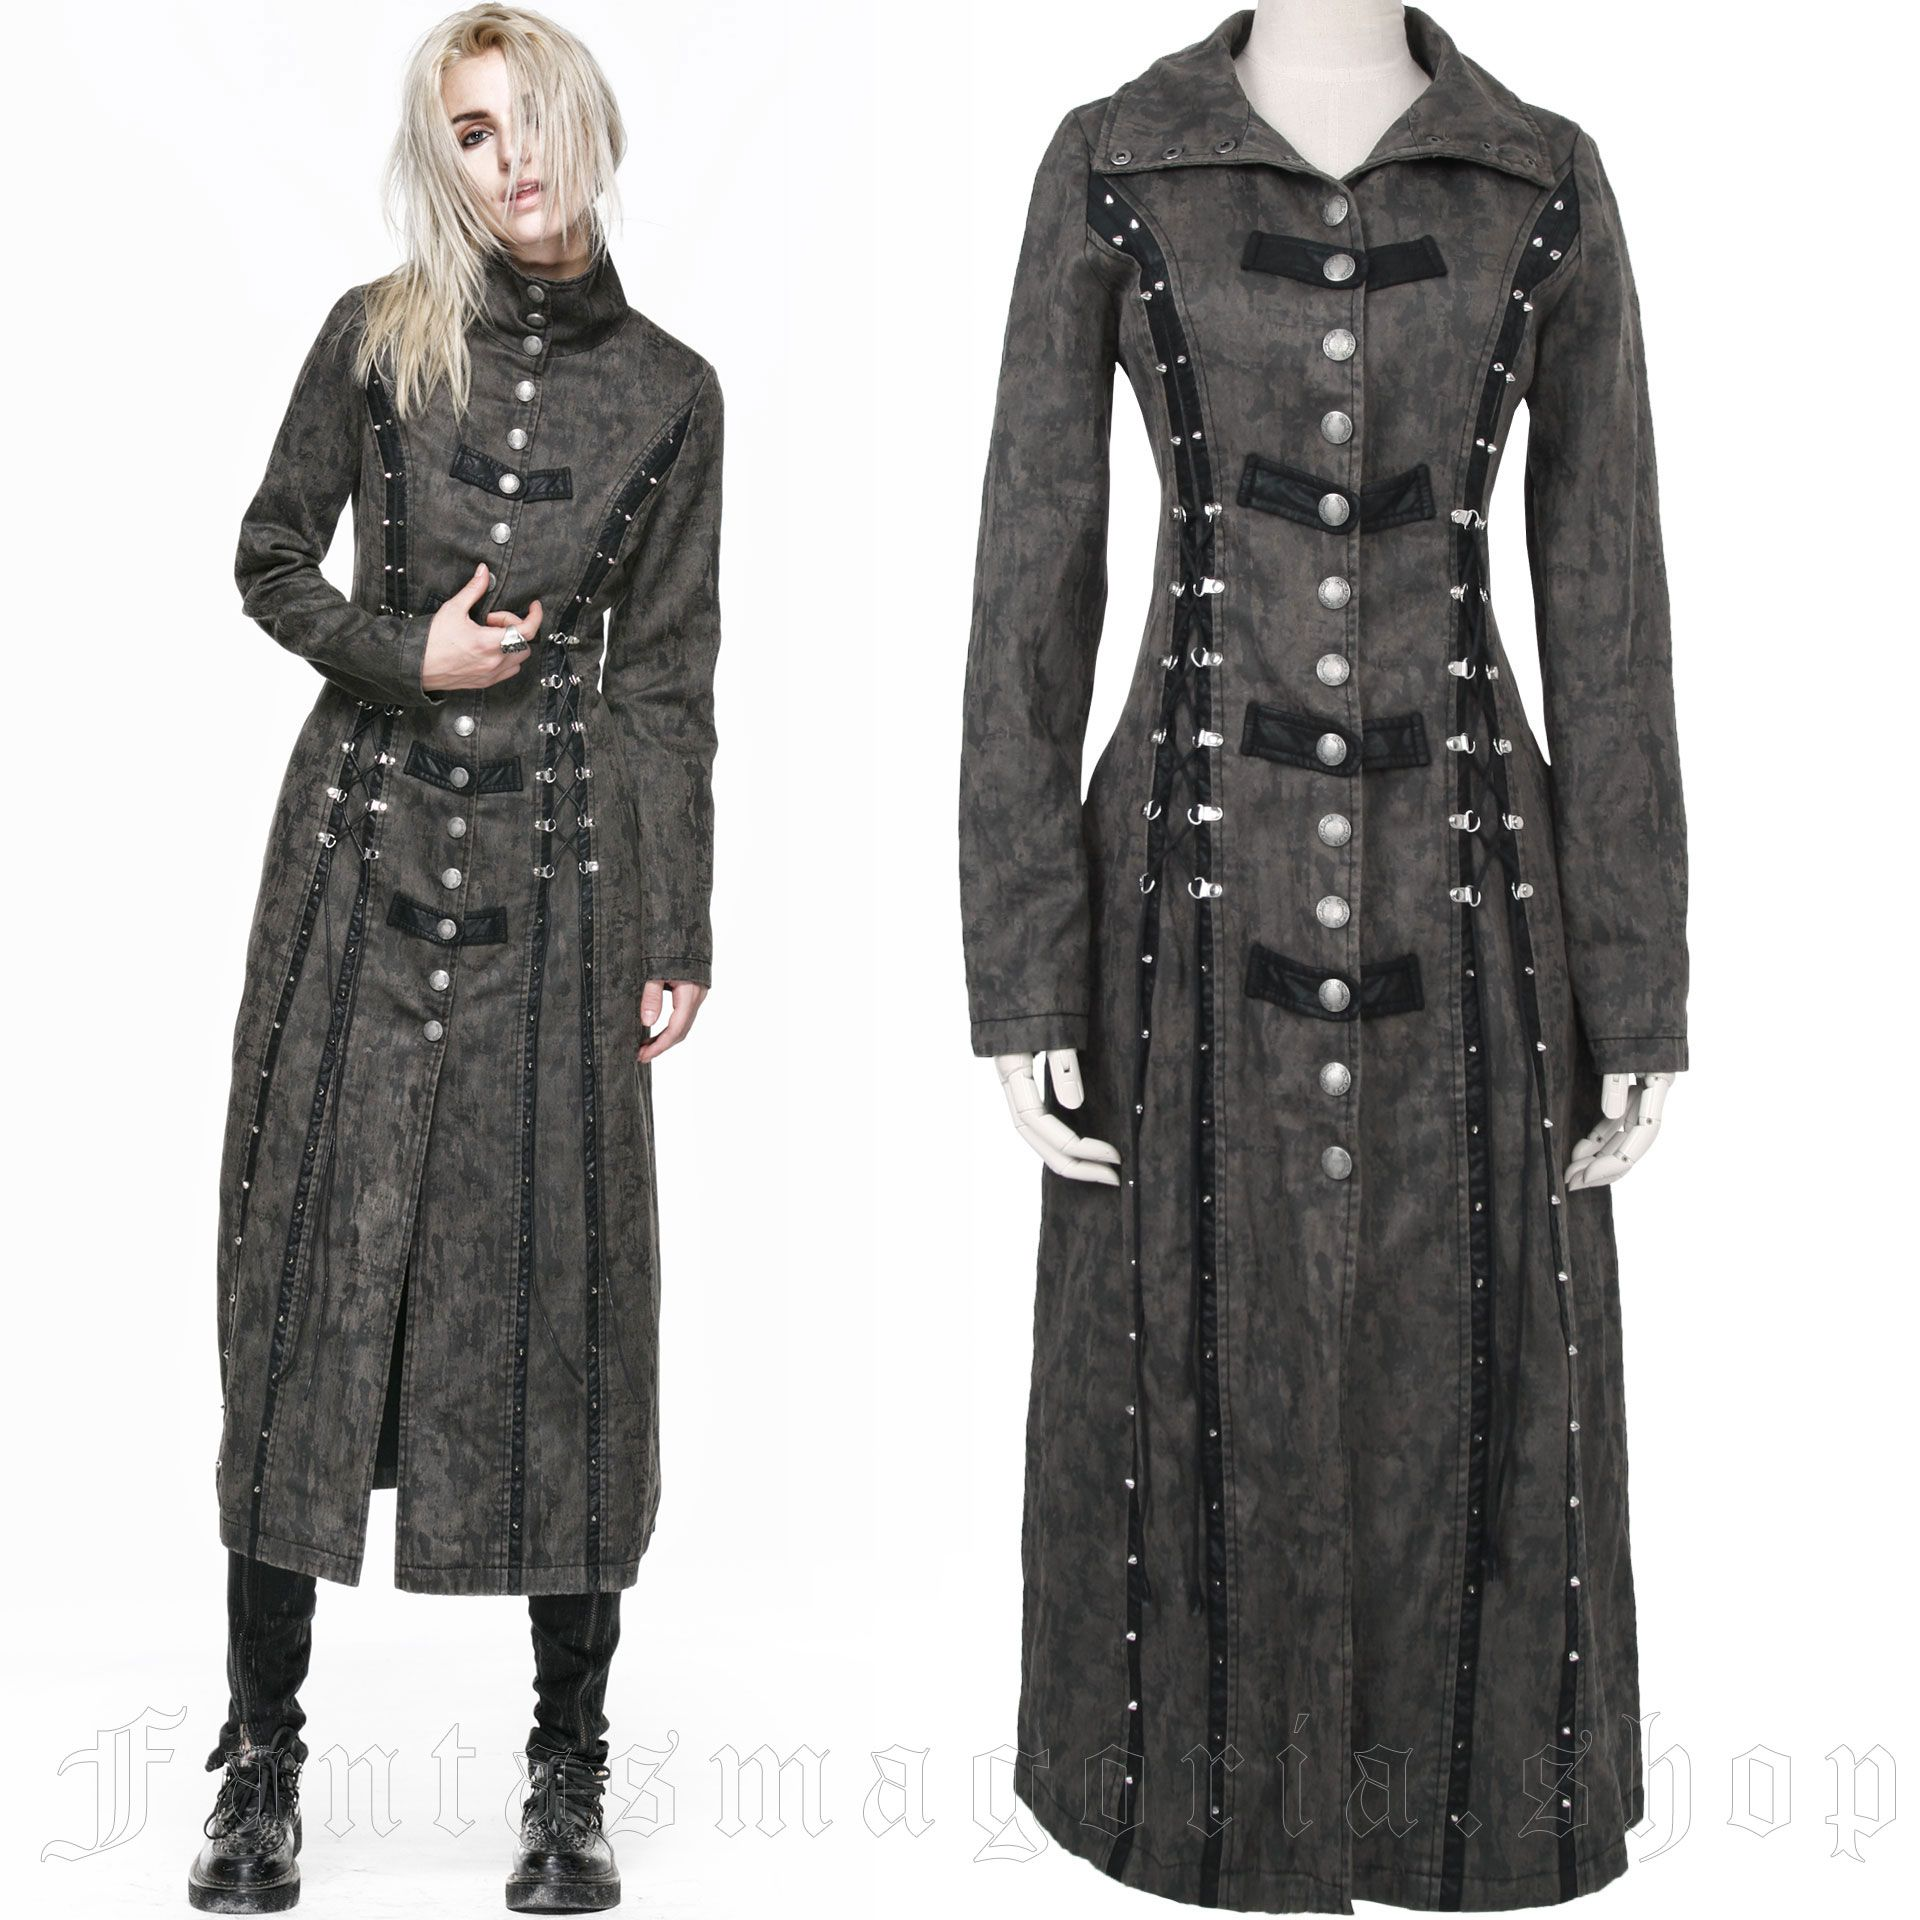 women's Nuclear Coma Coat by PUNK RAVE brand, code: Y-548/GY/Female